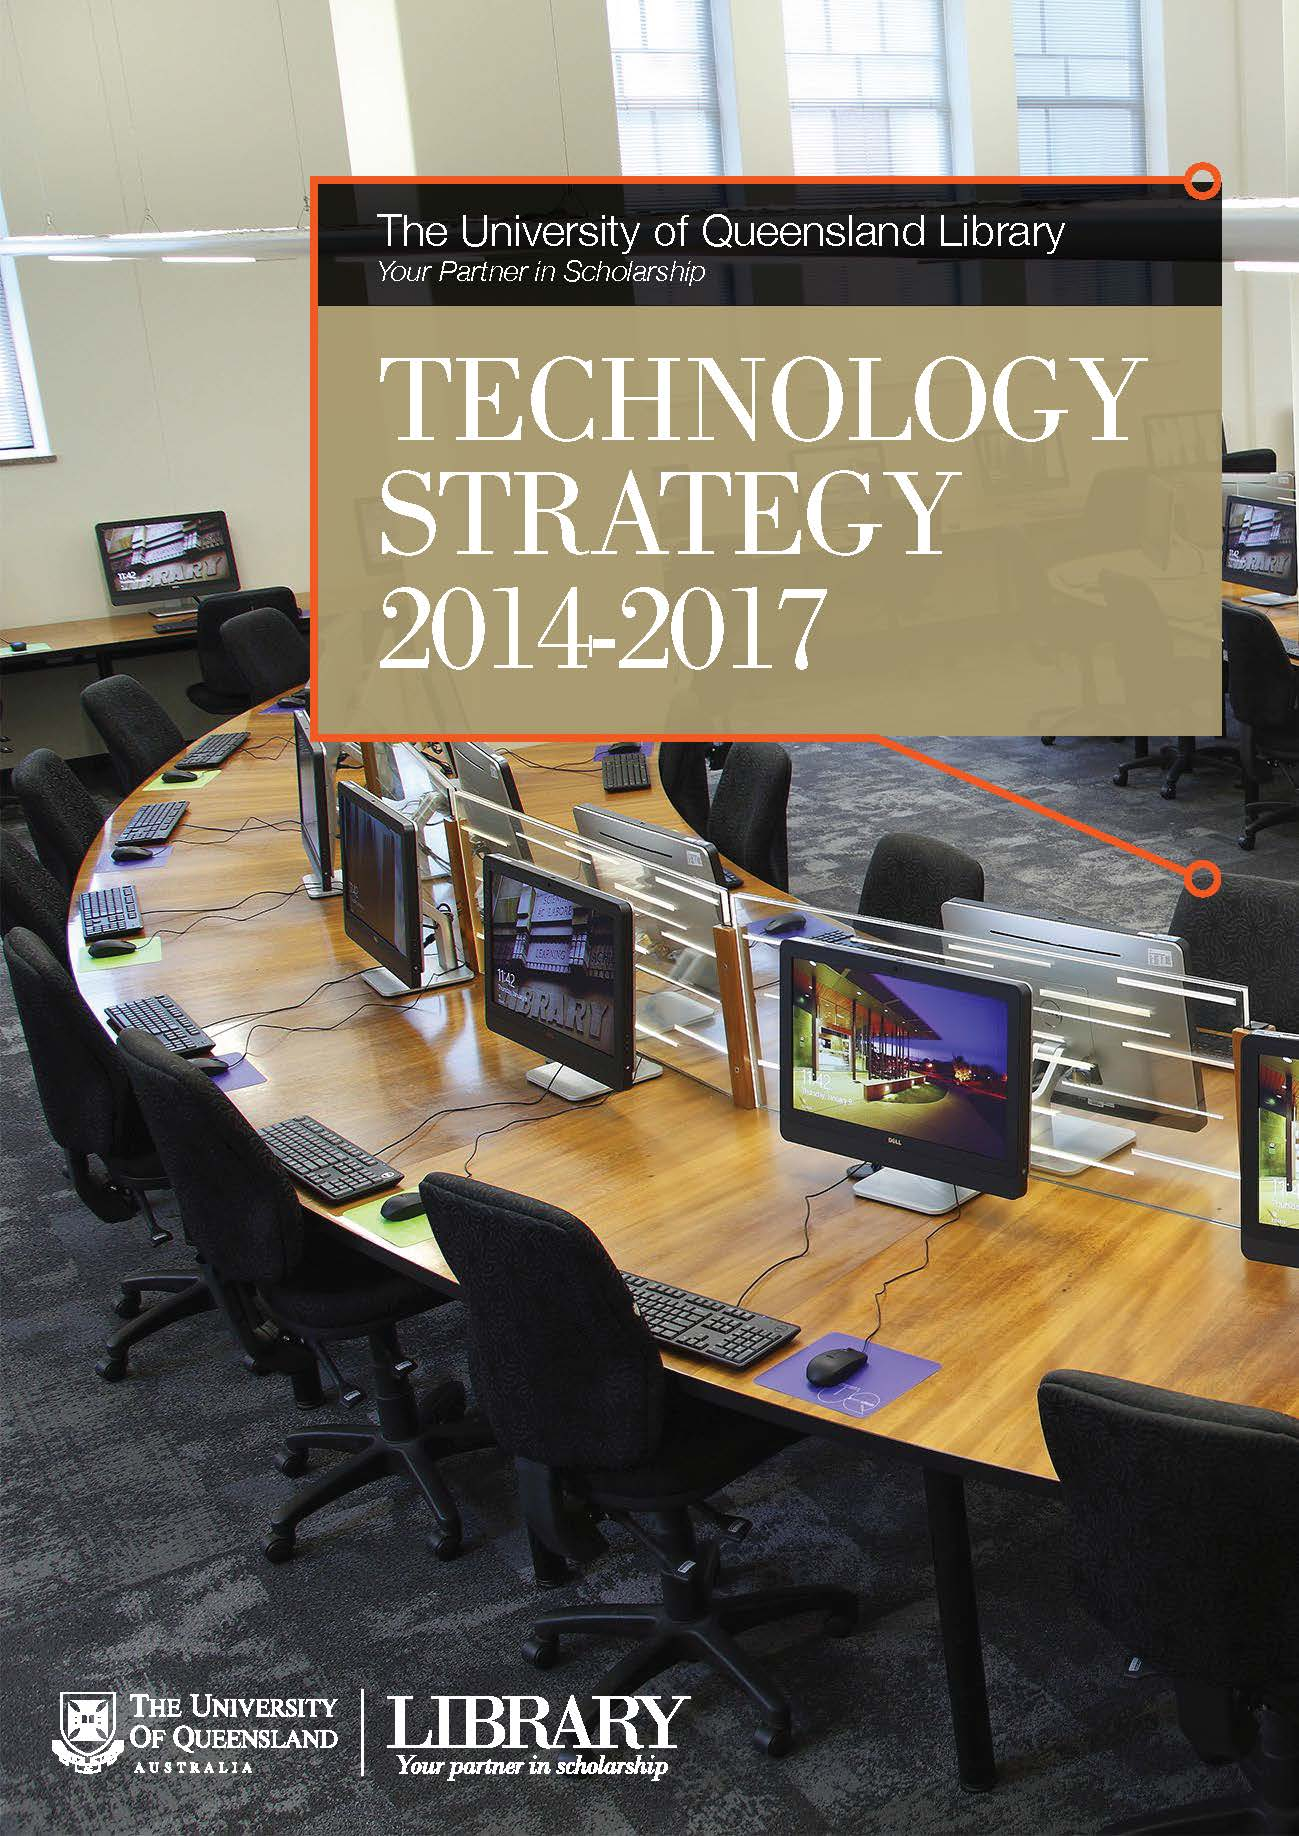 Library technology strategy (PDF, 1 MB)